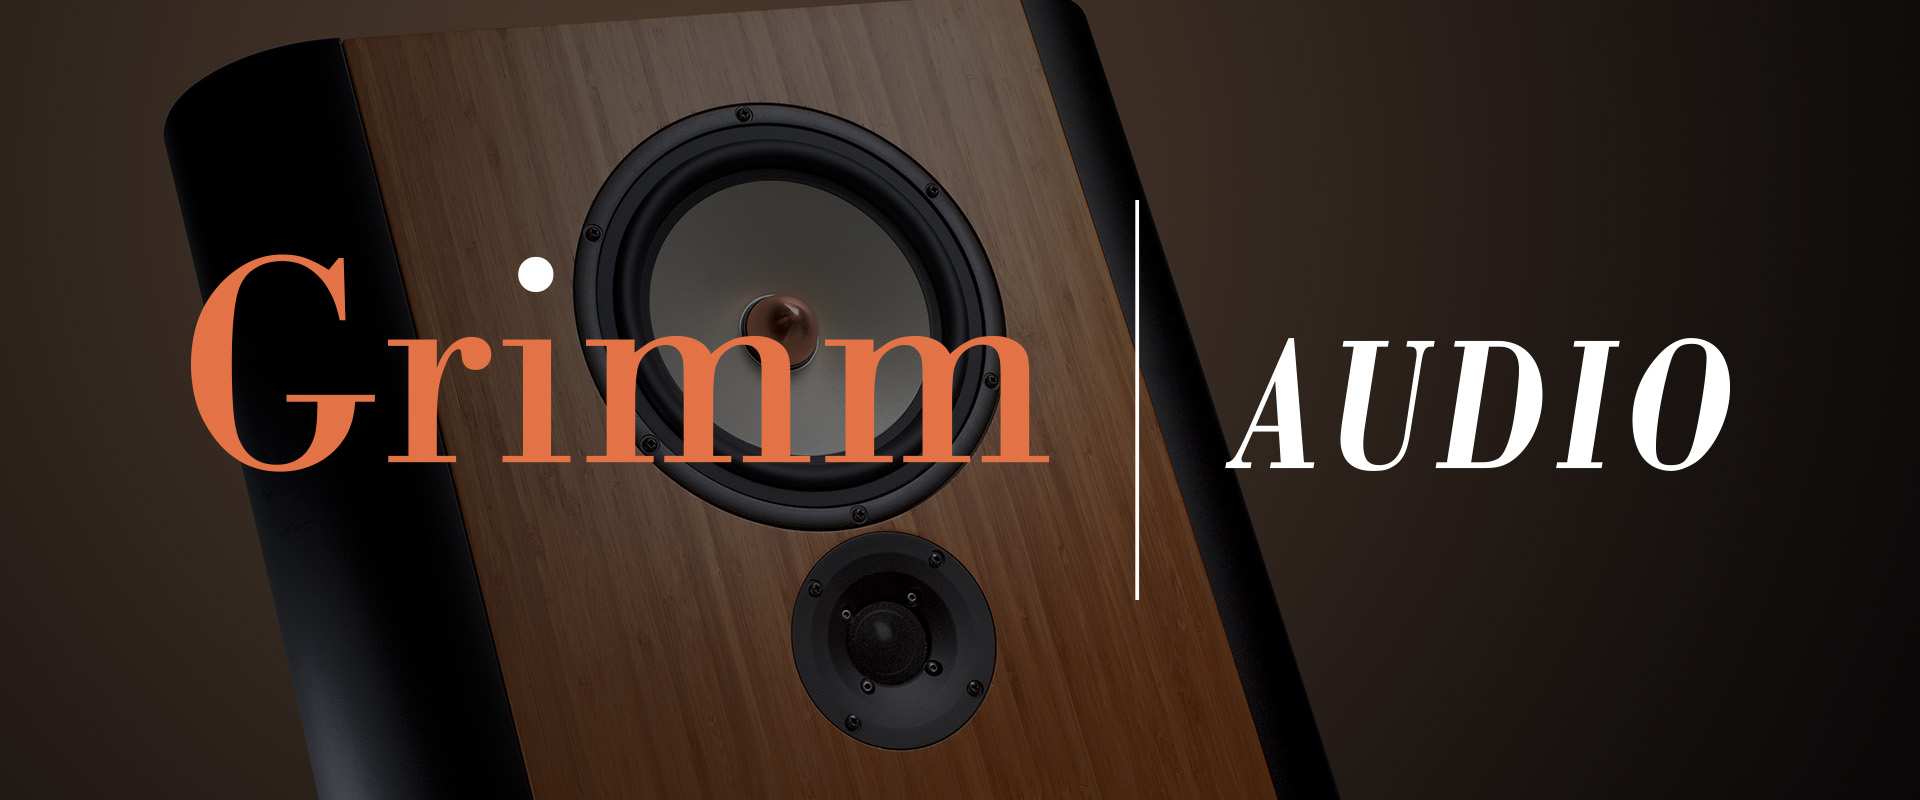 Grimm Audio - Chattelin Audio Systems